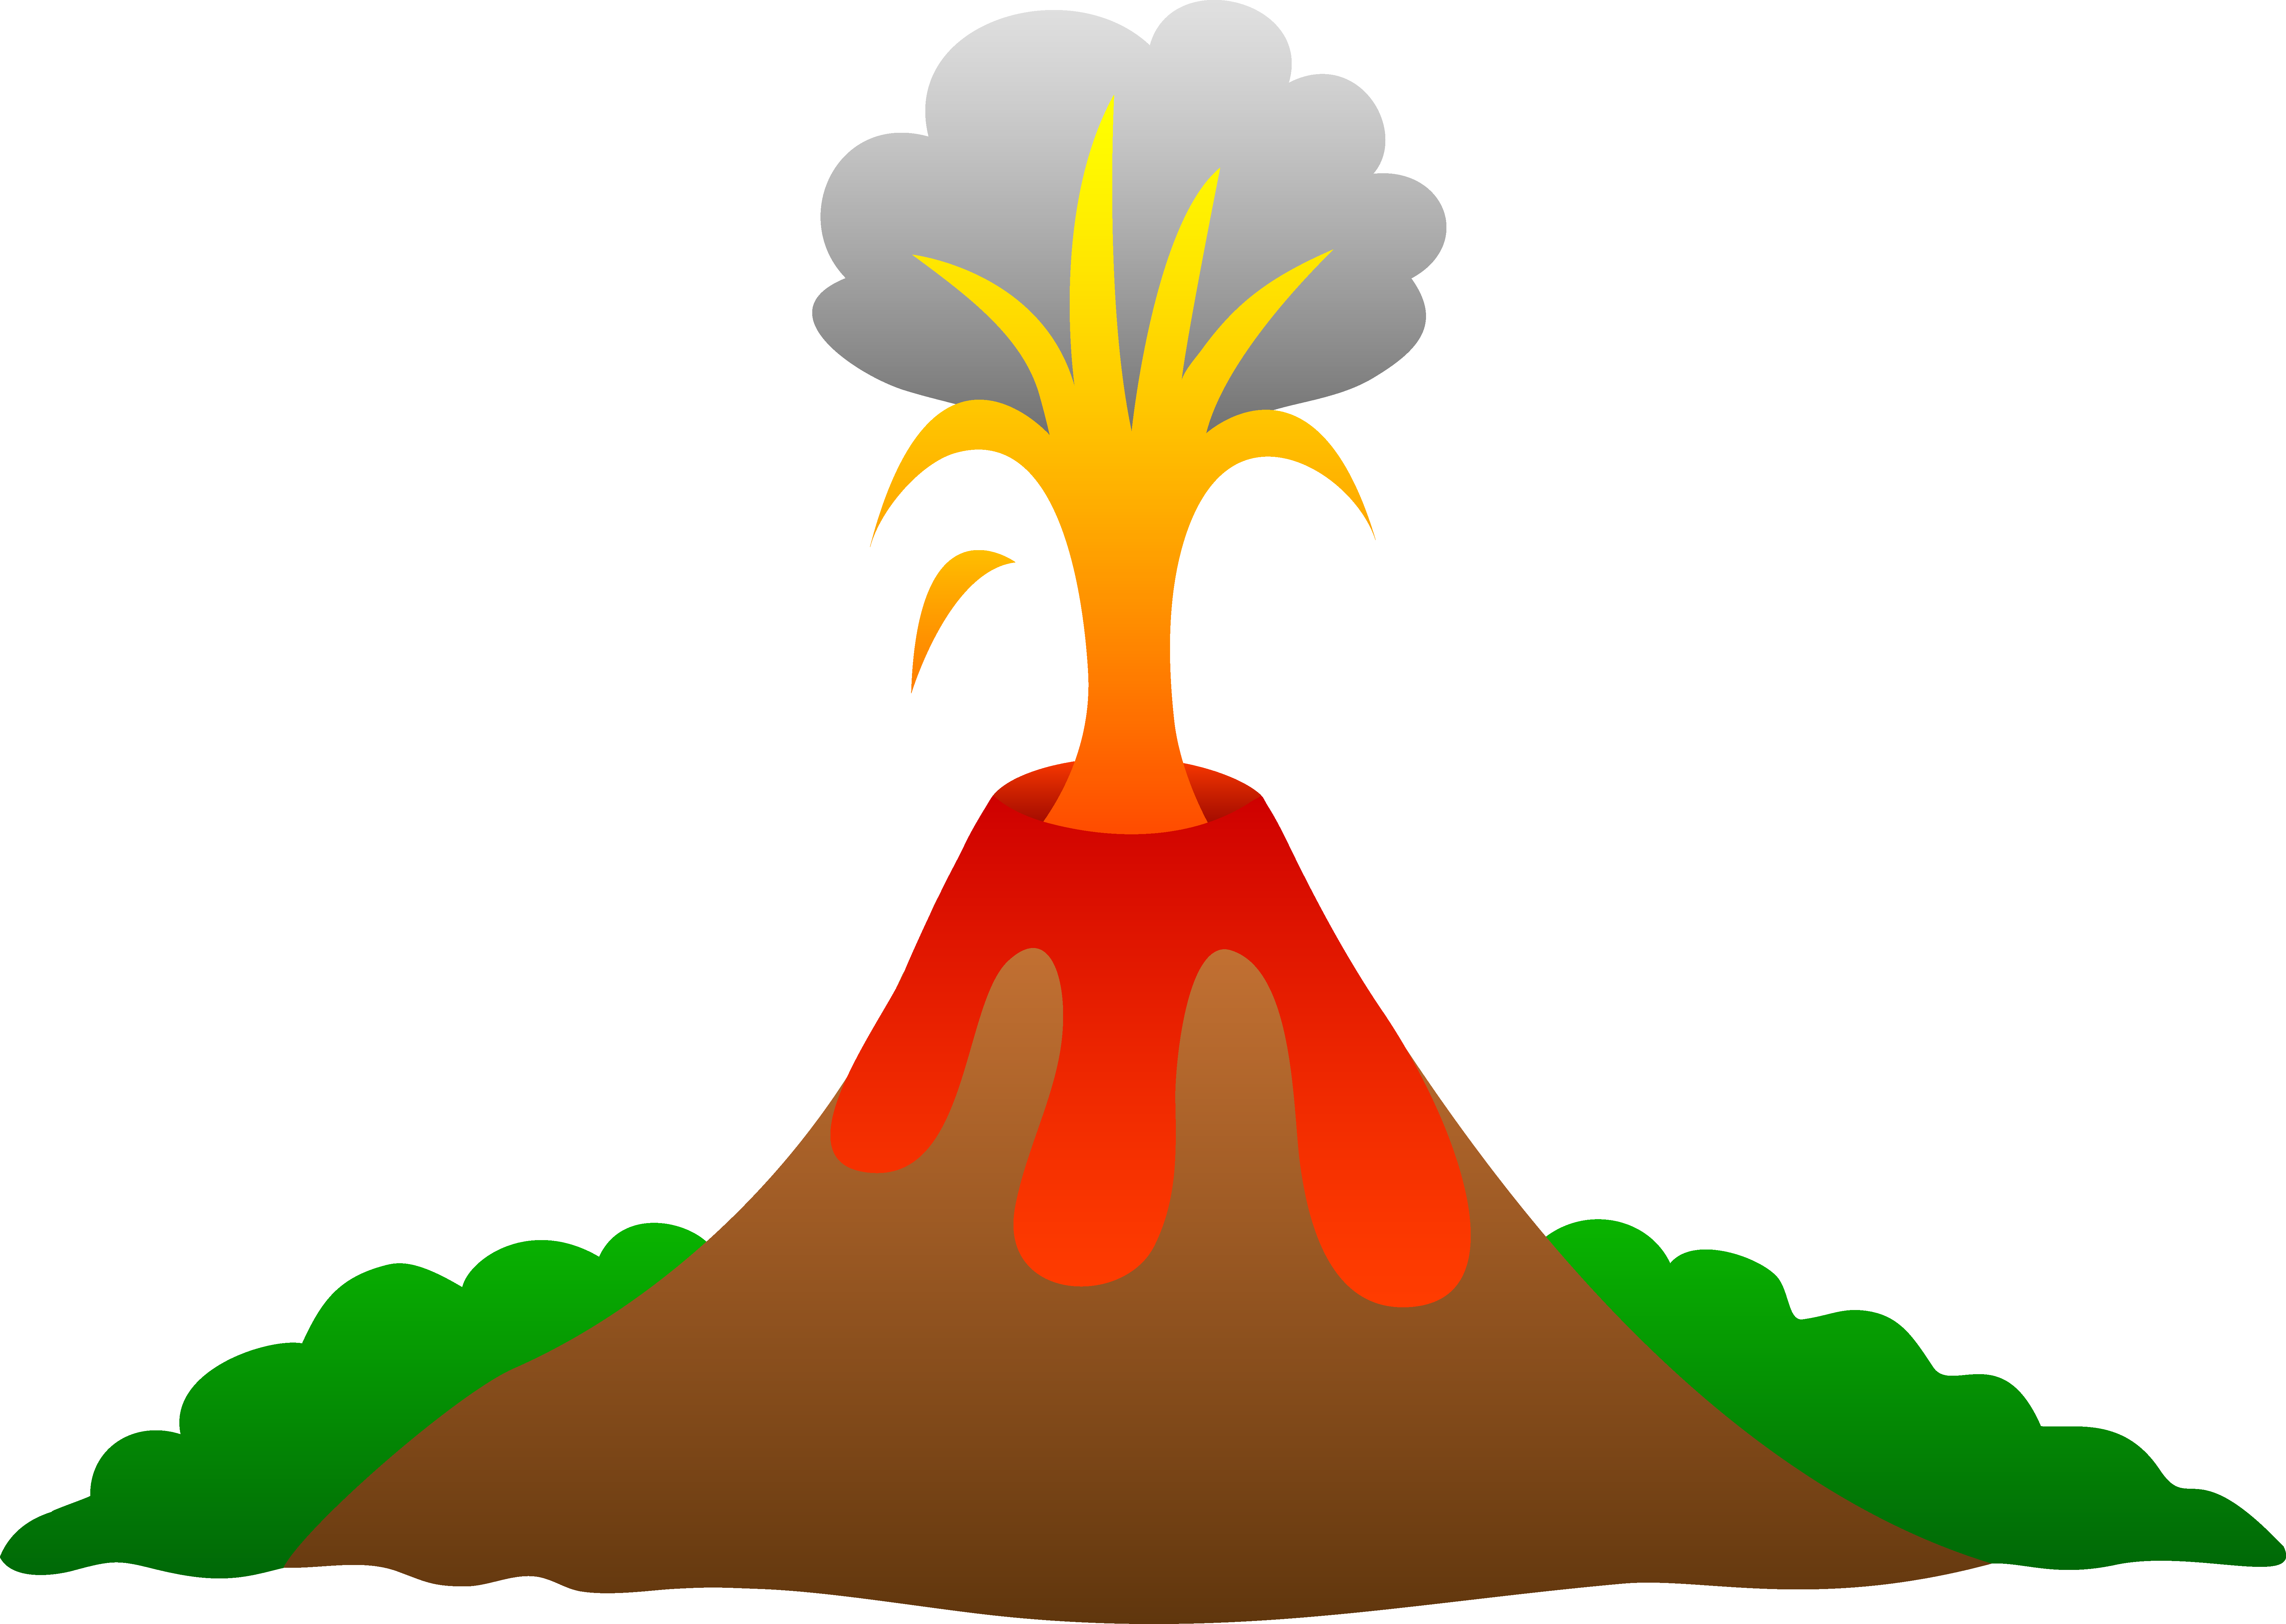 Scientist clipart explosion. Mt etna volcano project